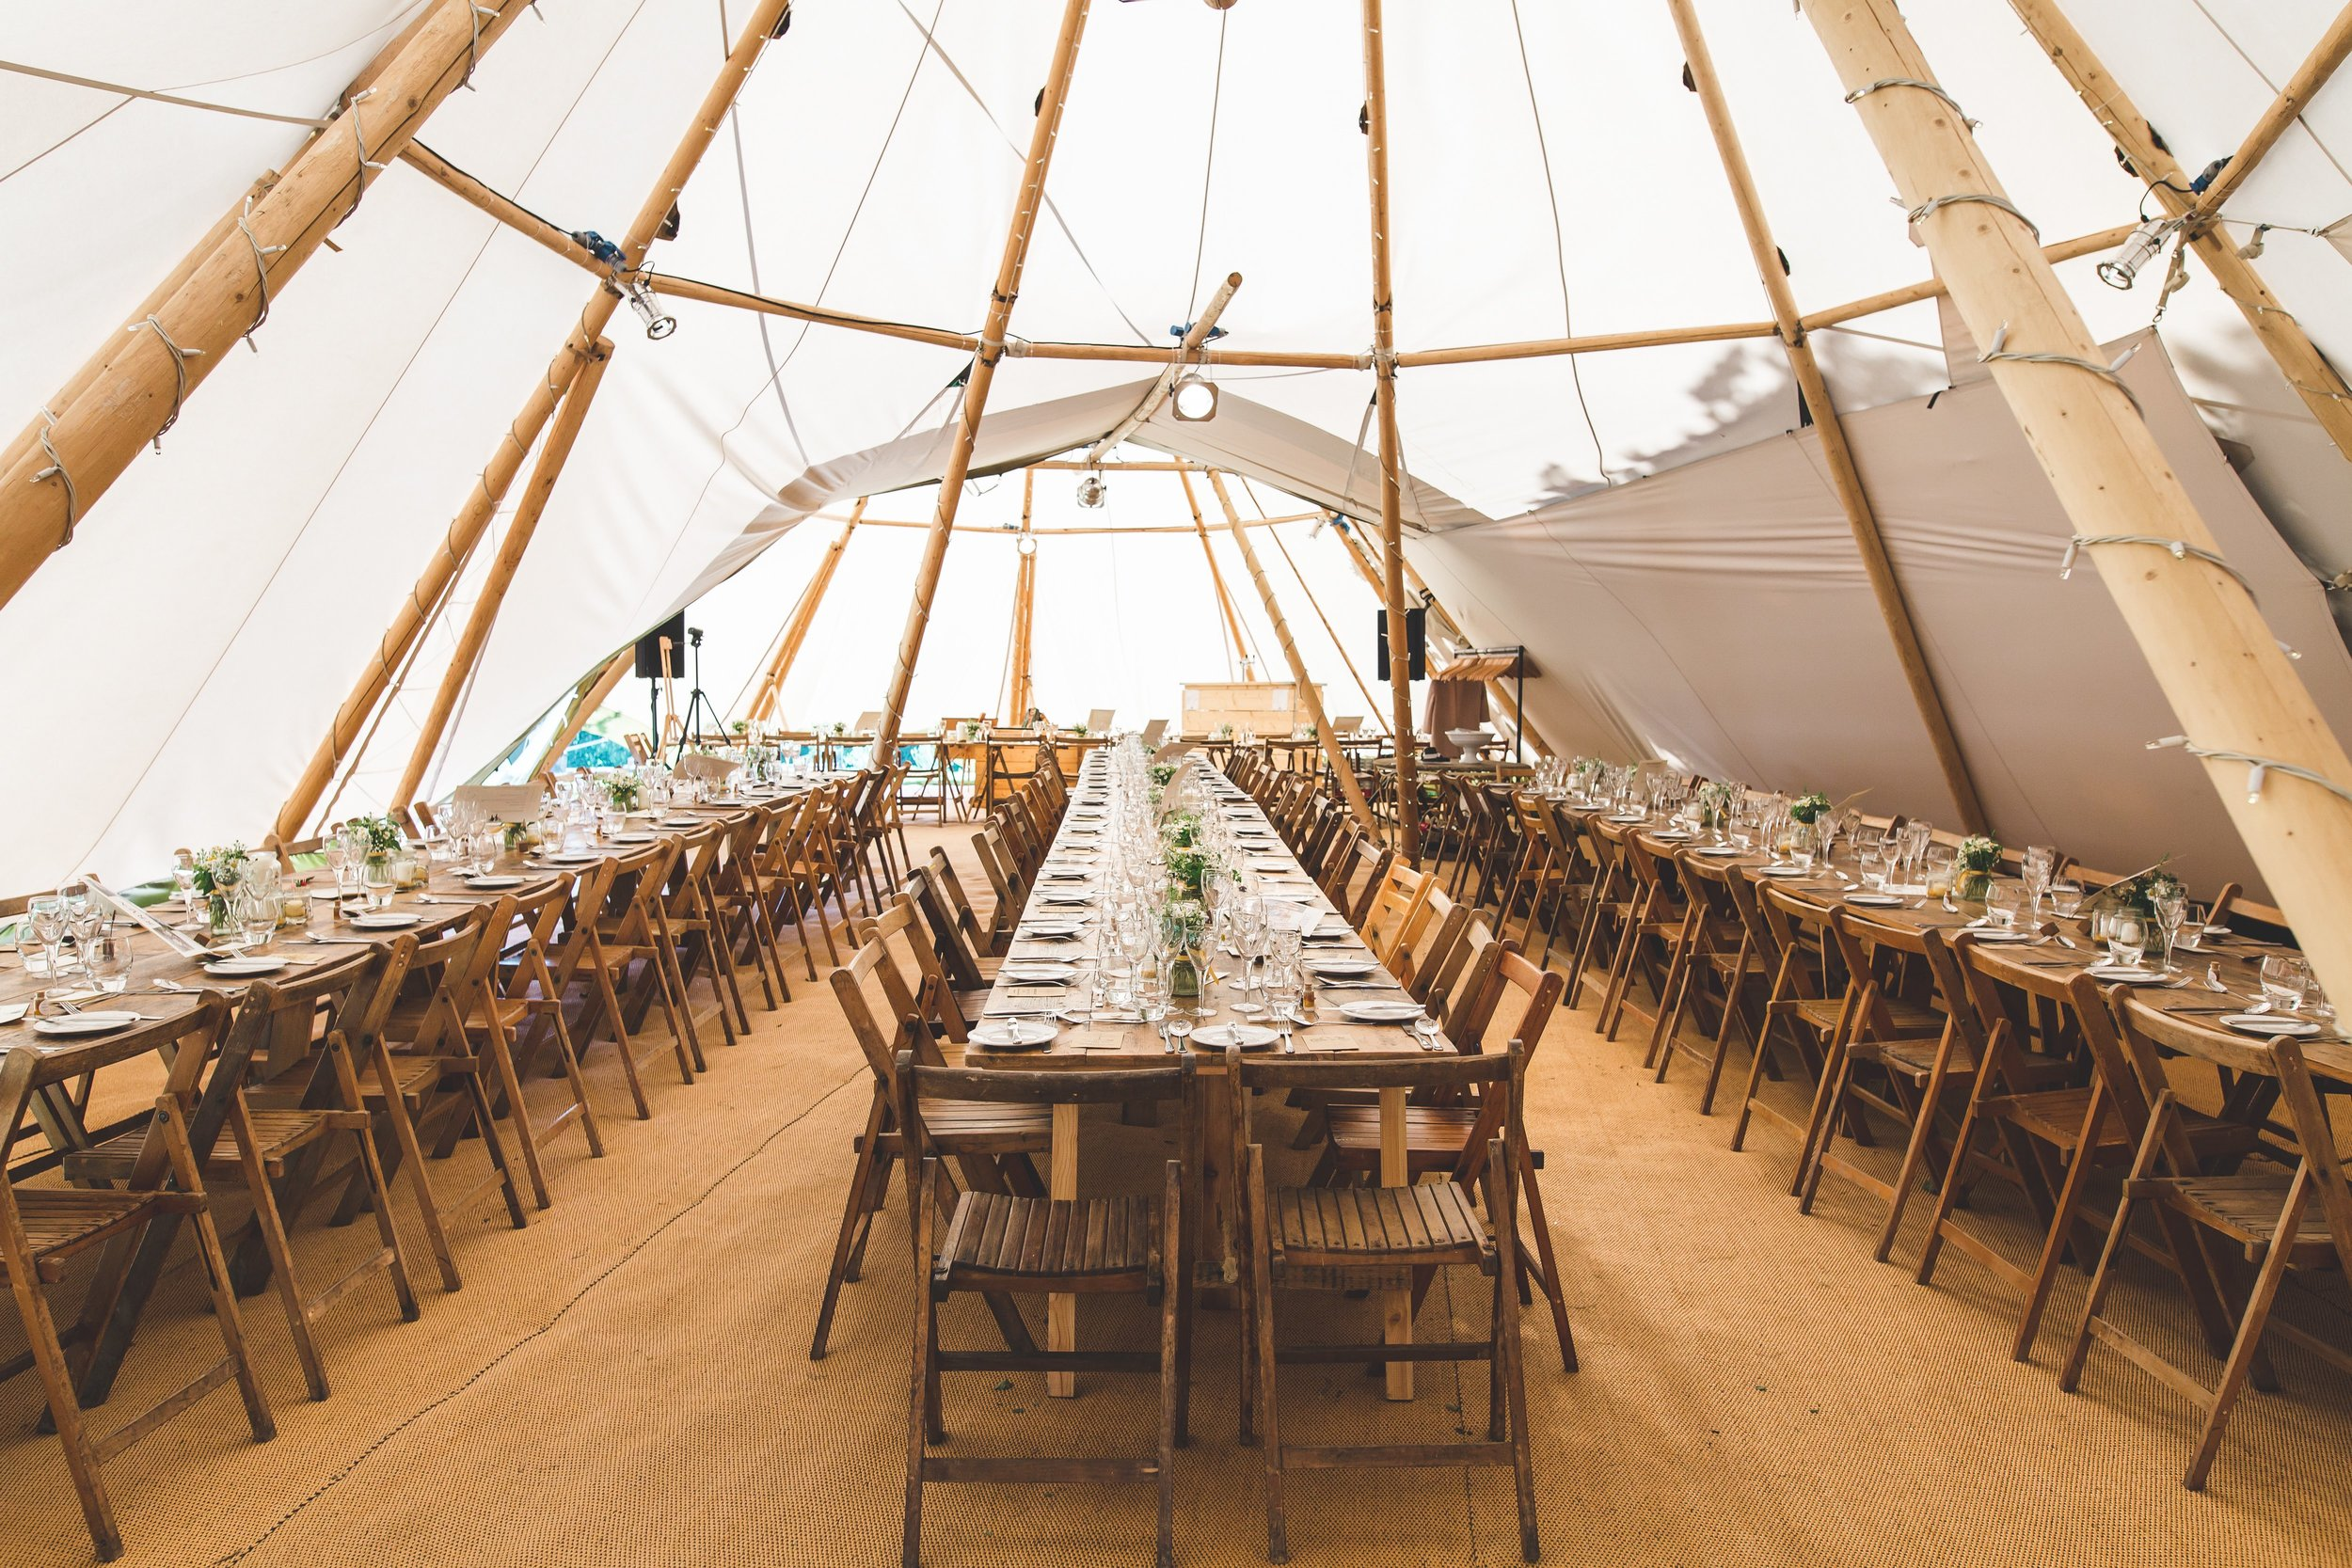 WOVEN MATTED FLOORING    Premium natural coloured matted floor per tipi $360